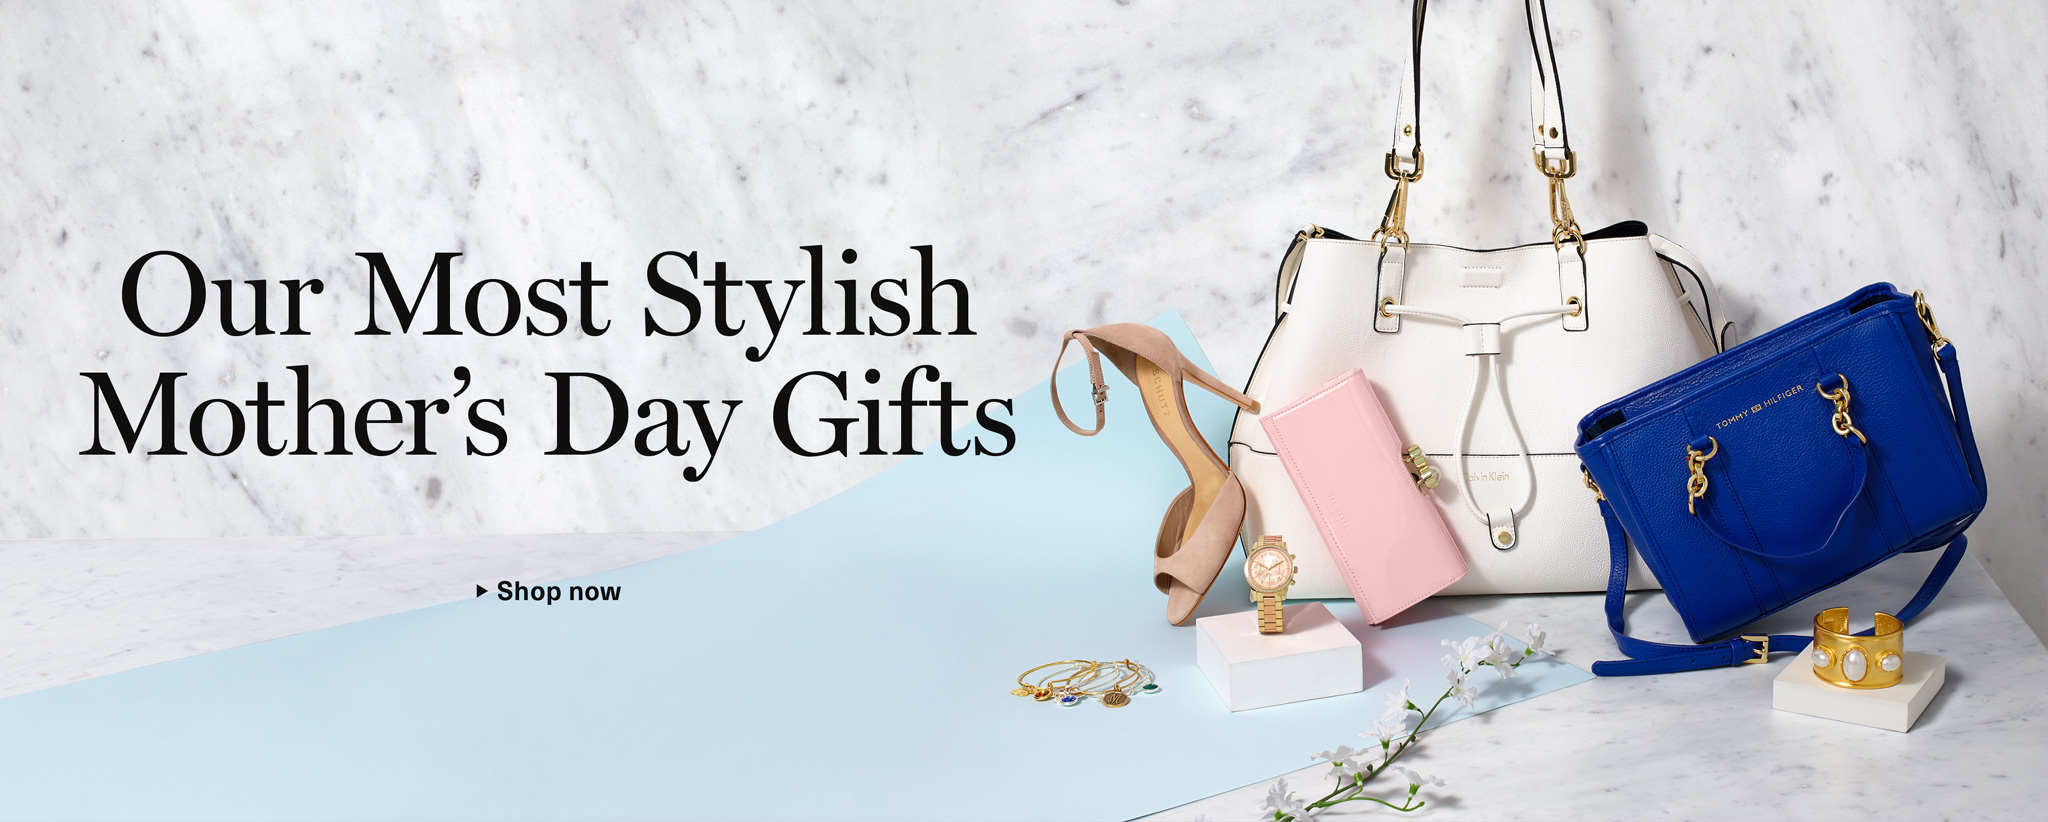 Our Most Stylish Mother's Day Gifts